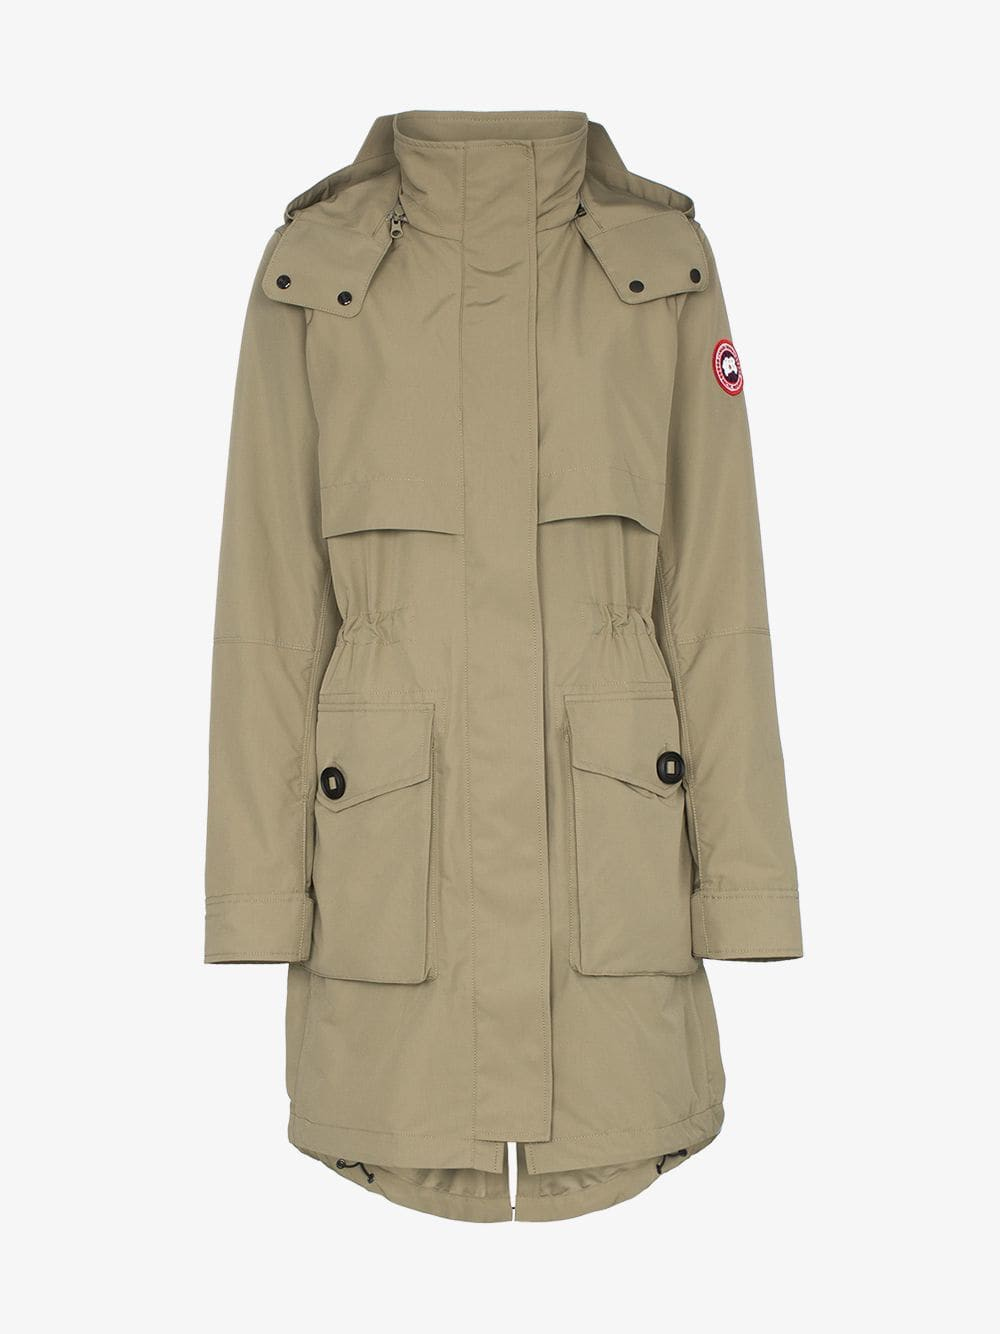 Canada Goose cavalry hooded parka coat in green